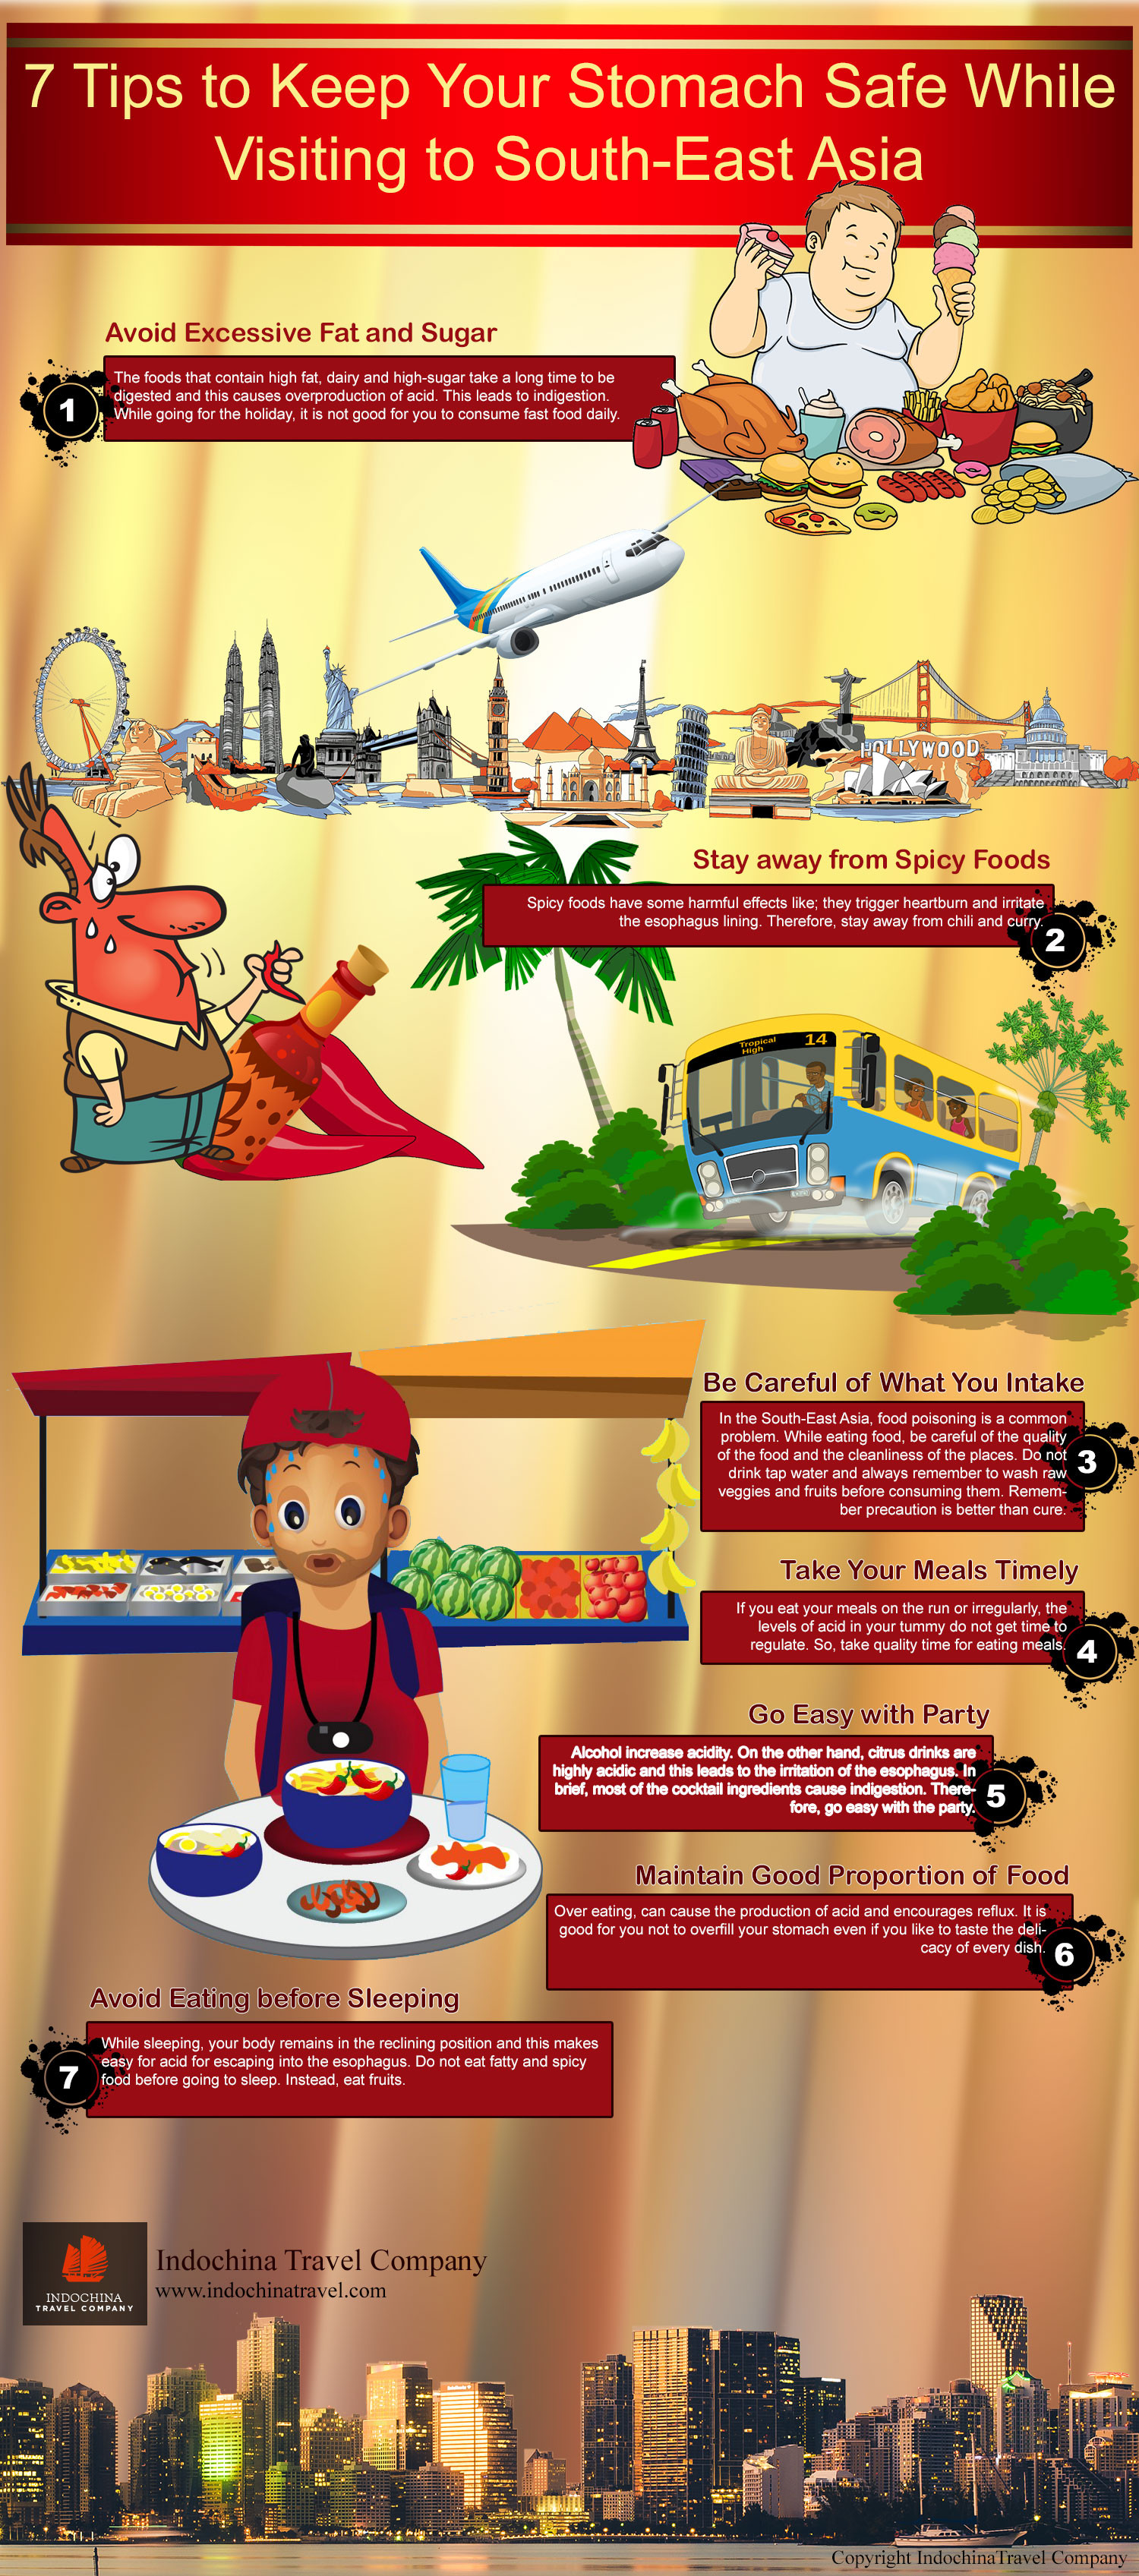 7 Tips to Keep Your Stomach Safe While Visiting to South-East Asia Infographic